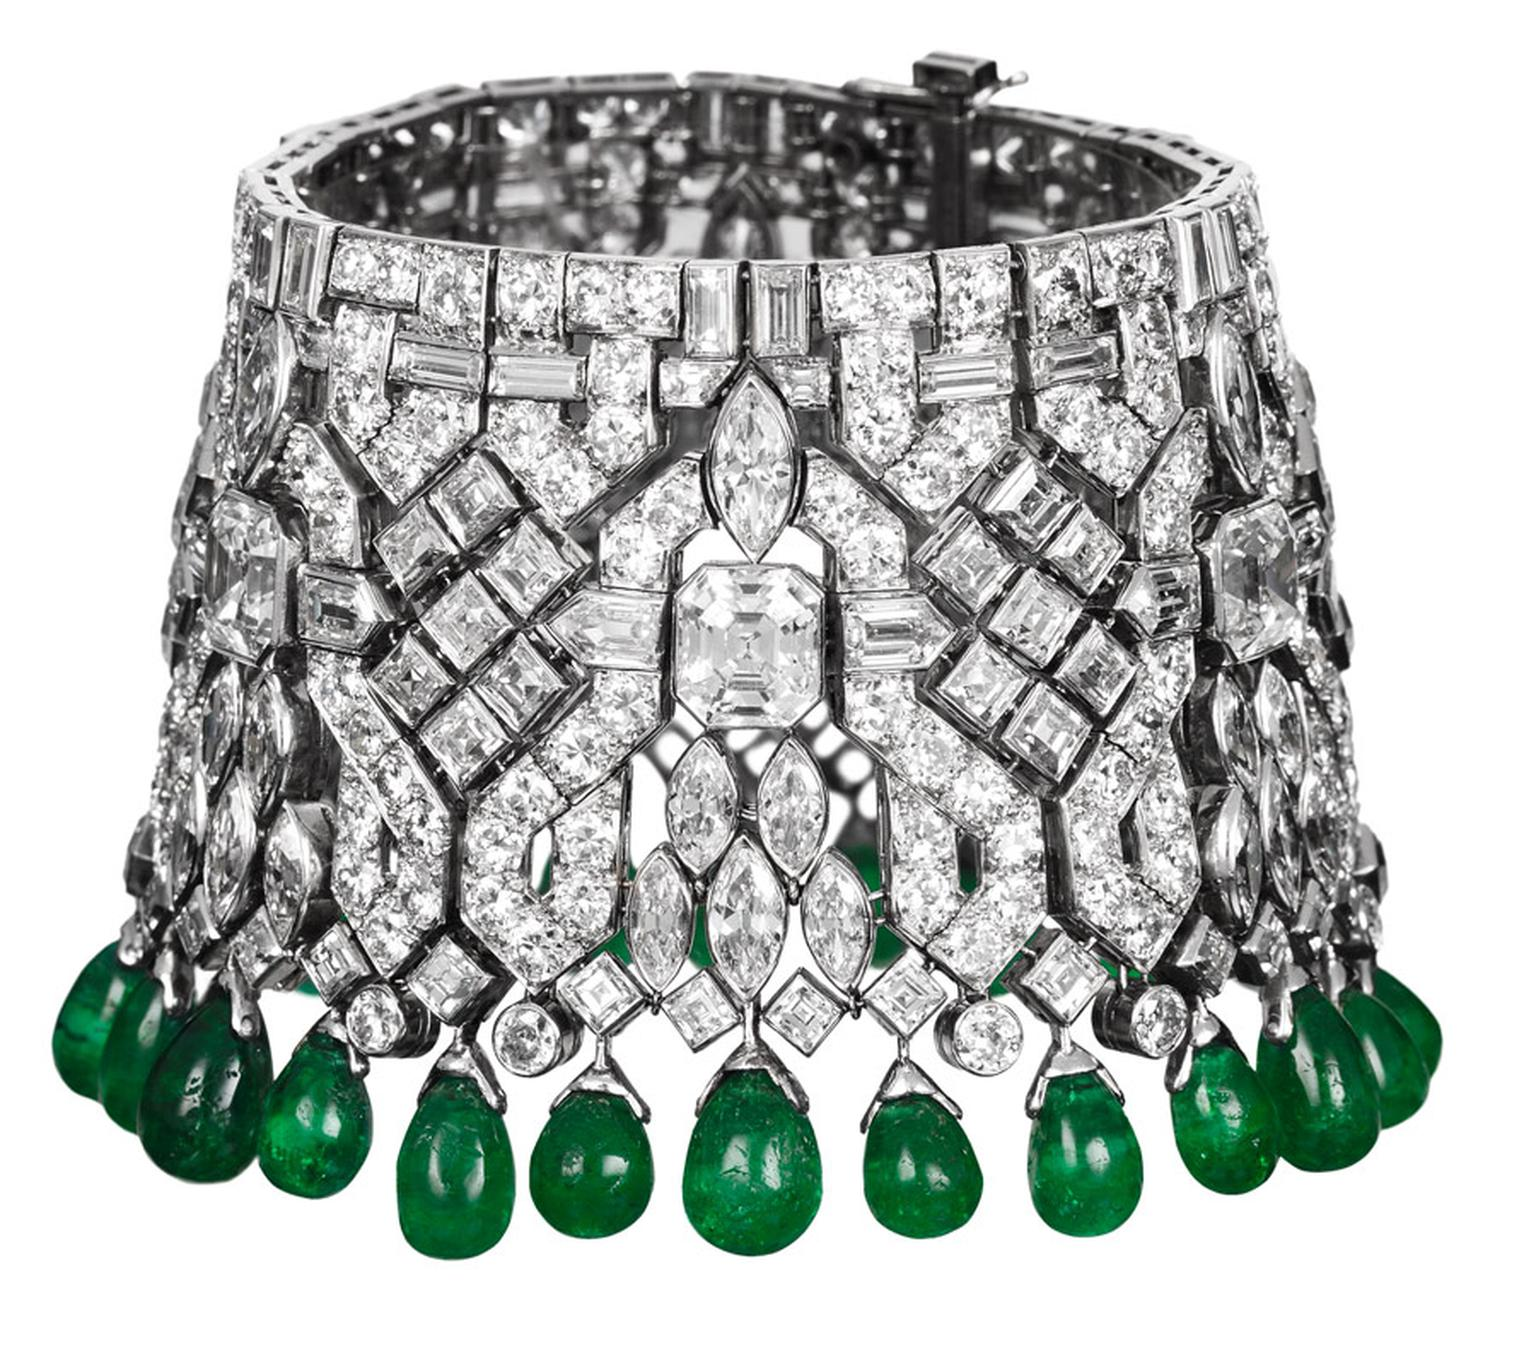 Van-Cleef-Arpels-Indian-bracelets-transformable-into-a-choker-ordered-by-Daisy-Fellowes-1928-Private-Collection_2.jpg